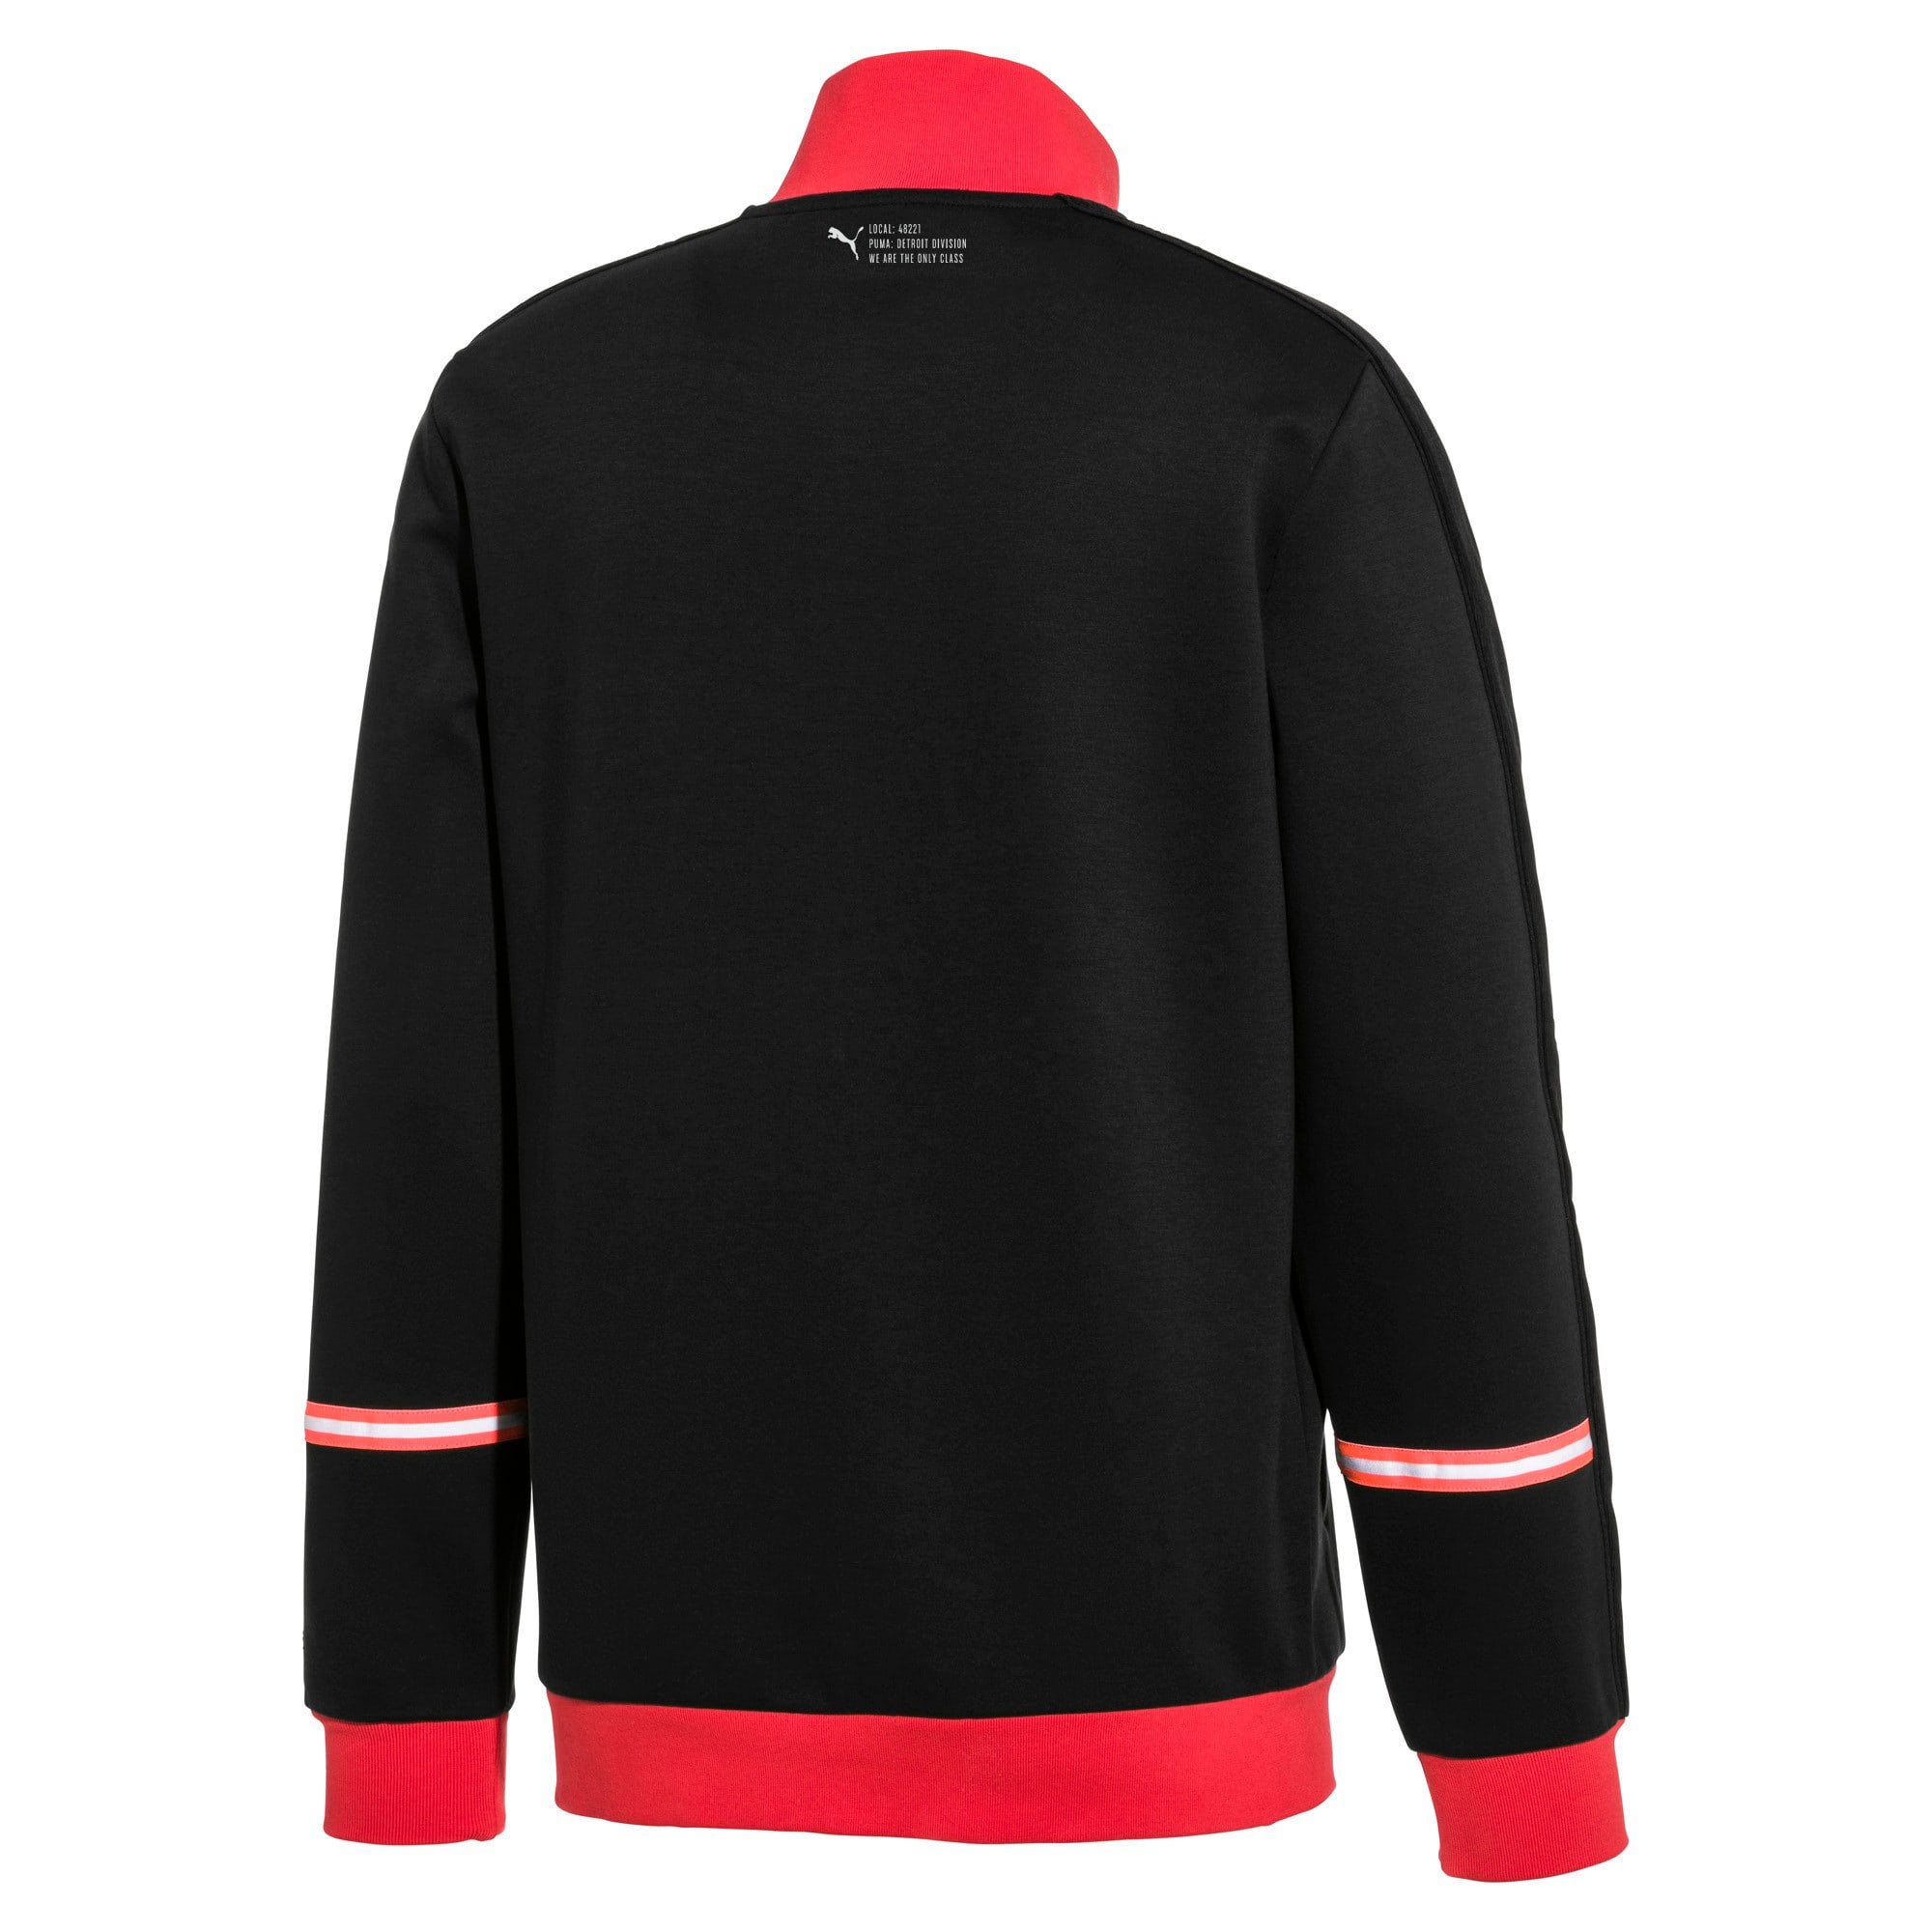 Thumbnail 2 of PUMA 91074 Men's T7 Track Top, Puma Black, medium